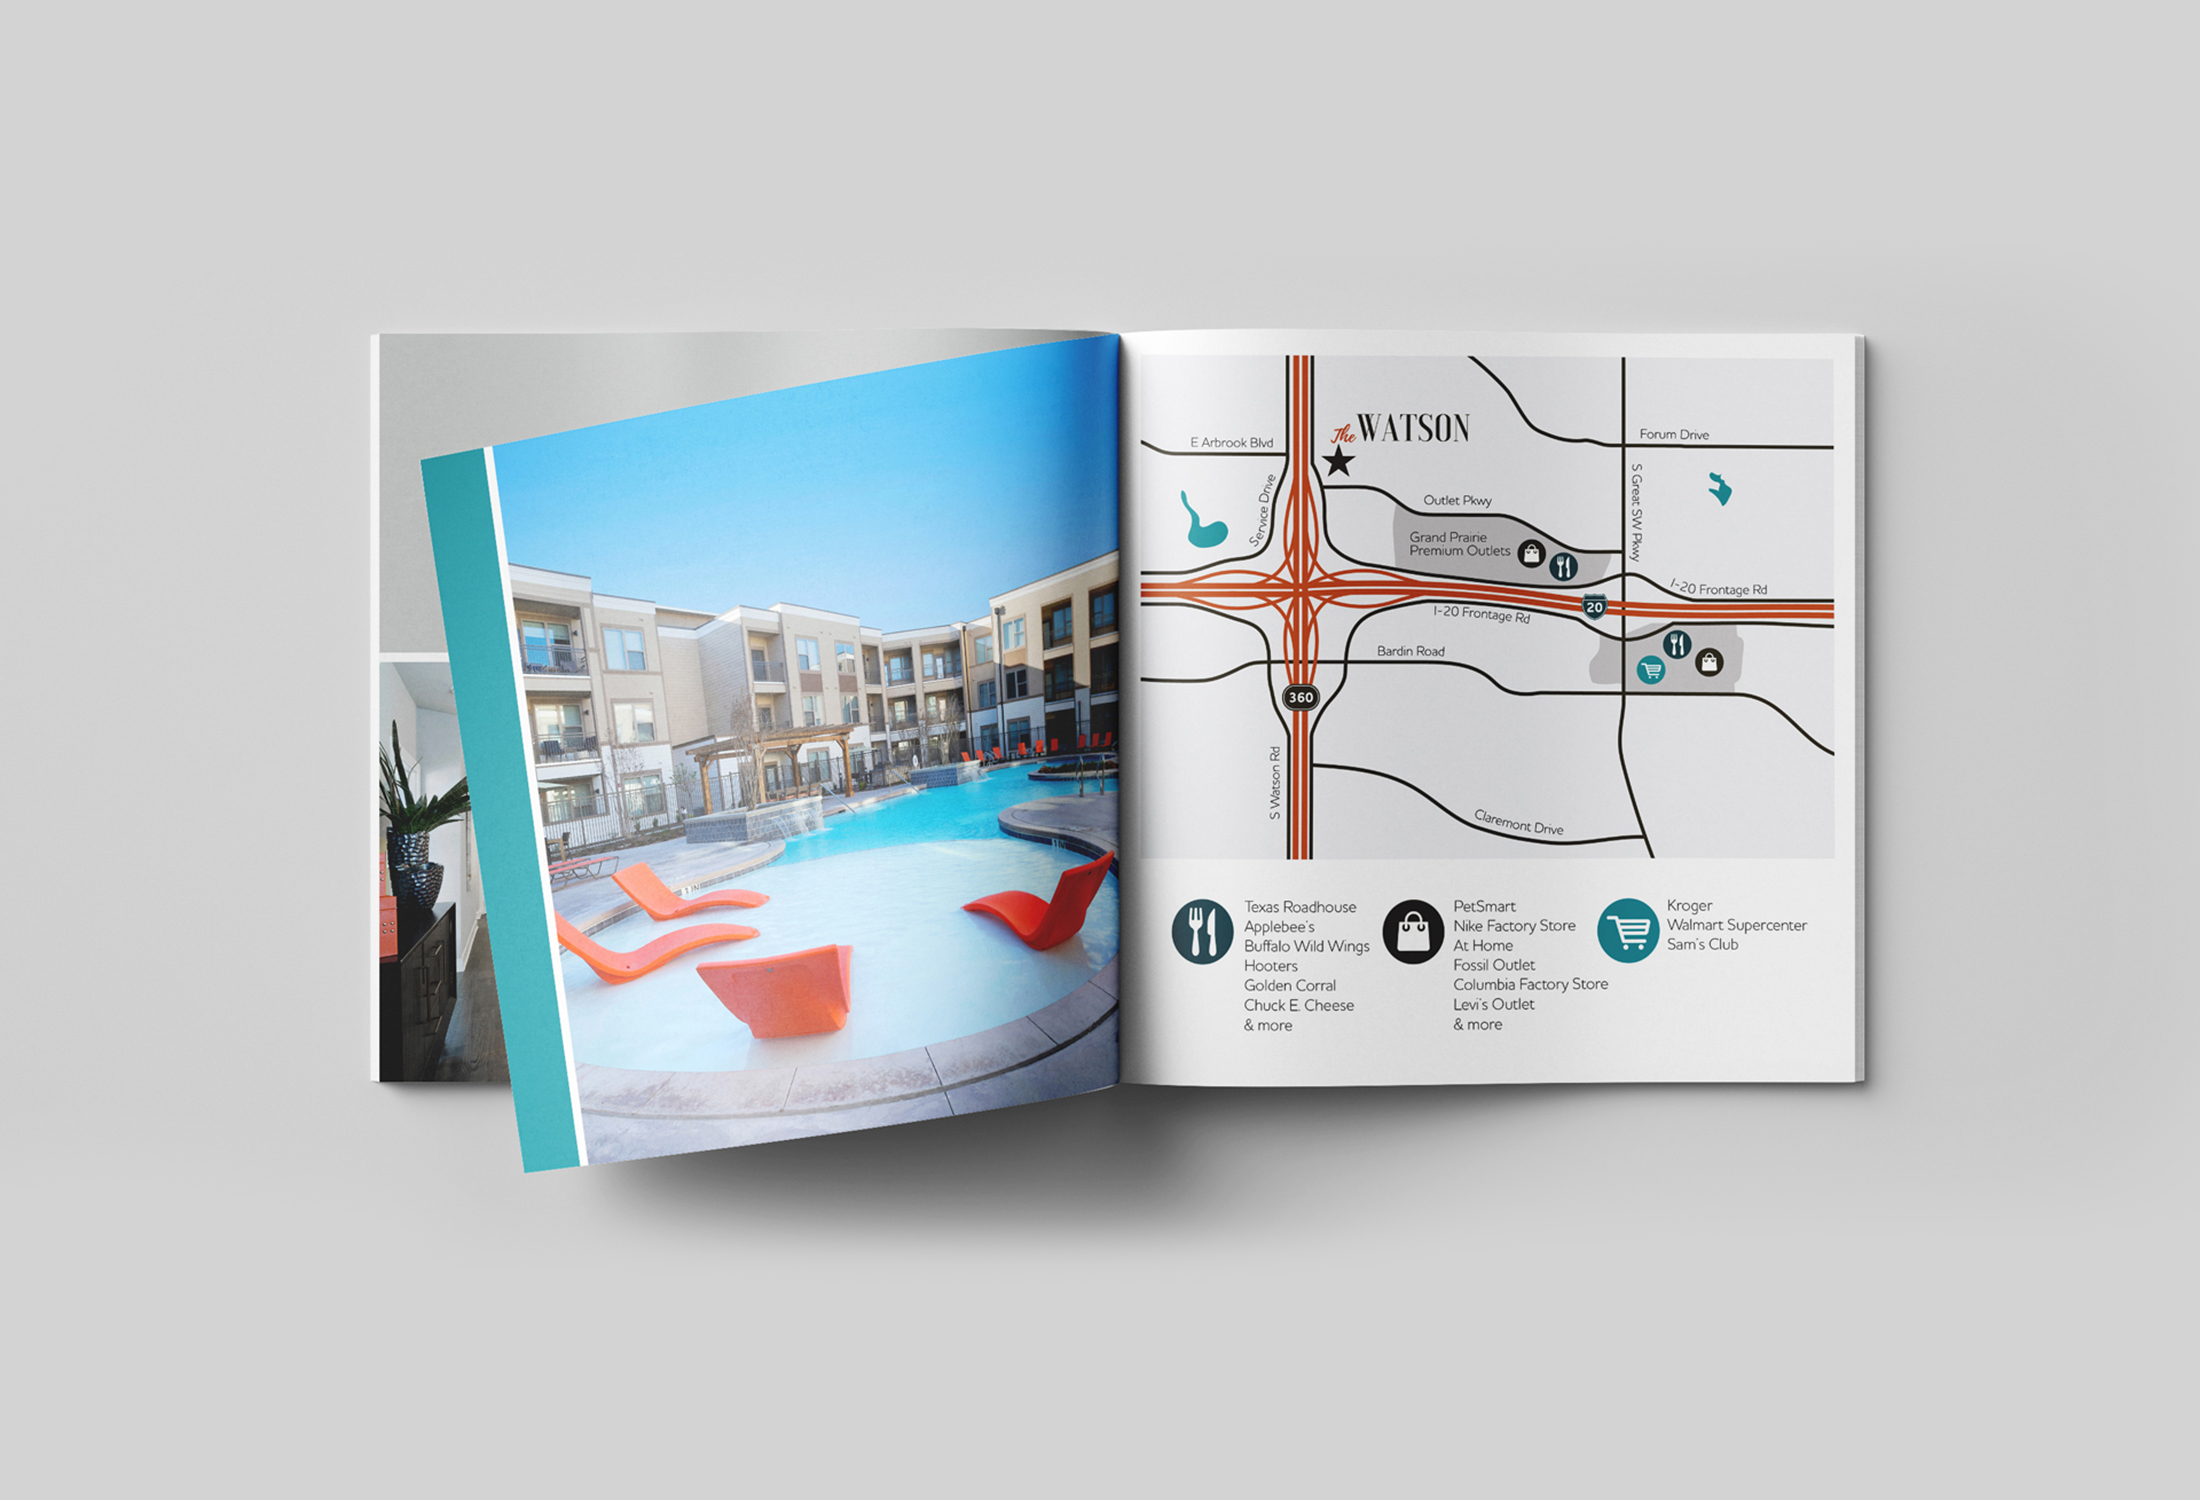 An Apartment Marketing Brochure Design for Print and Digital